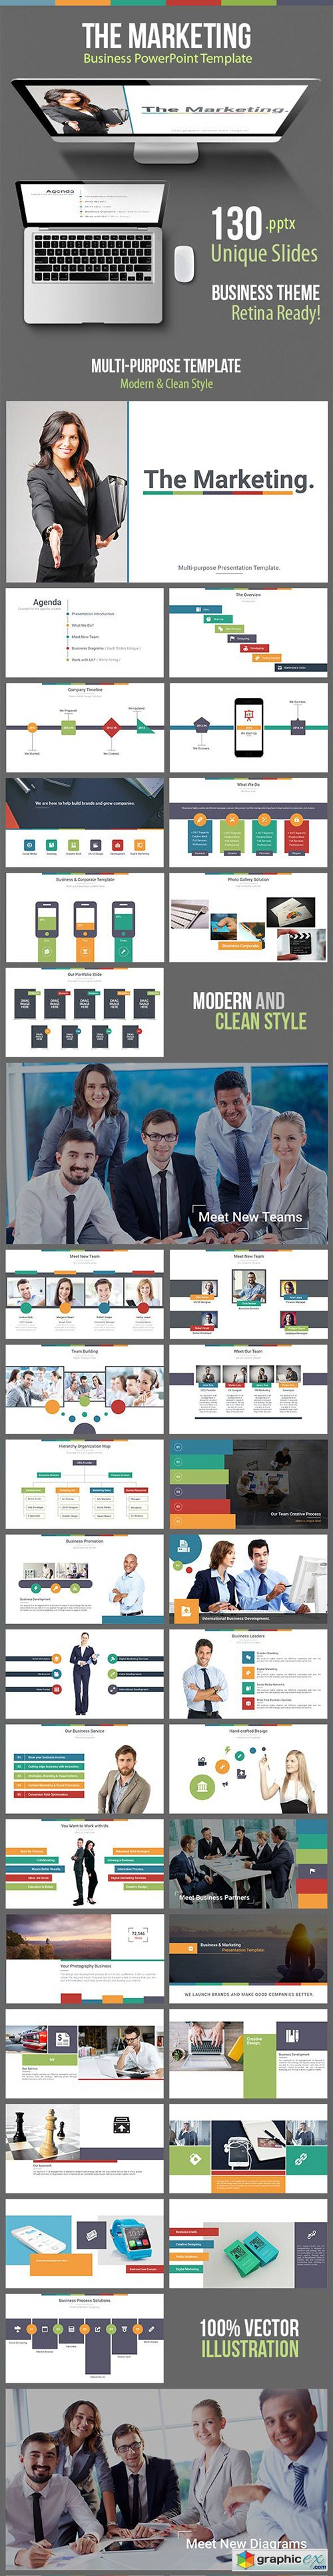 The Marketing - Business Powerpoint Template